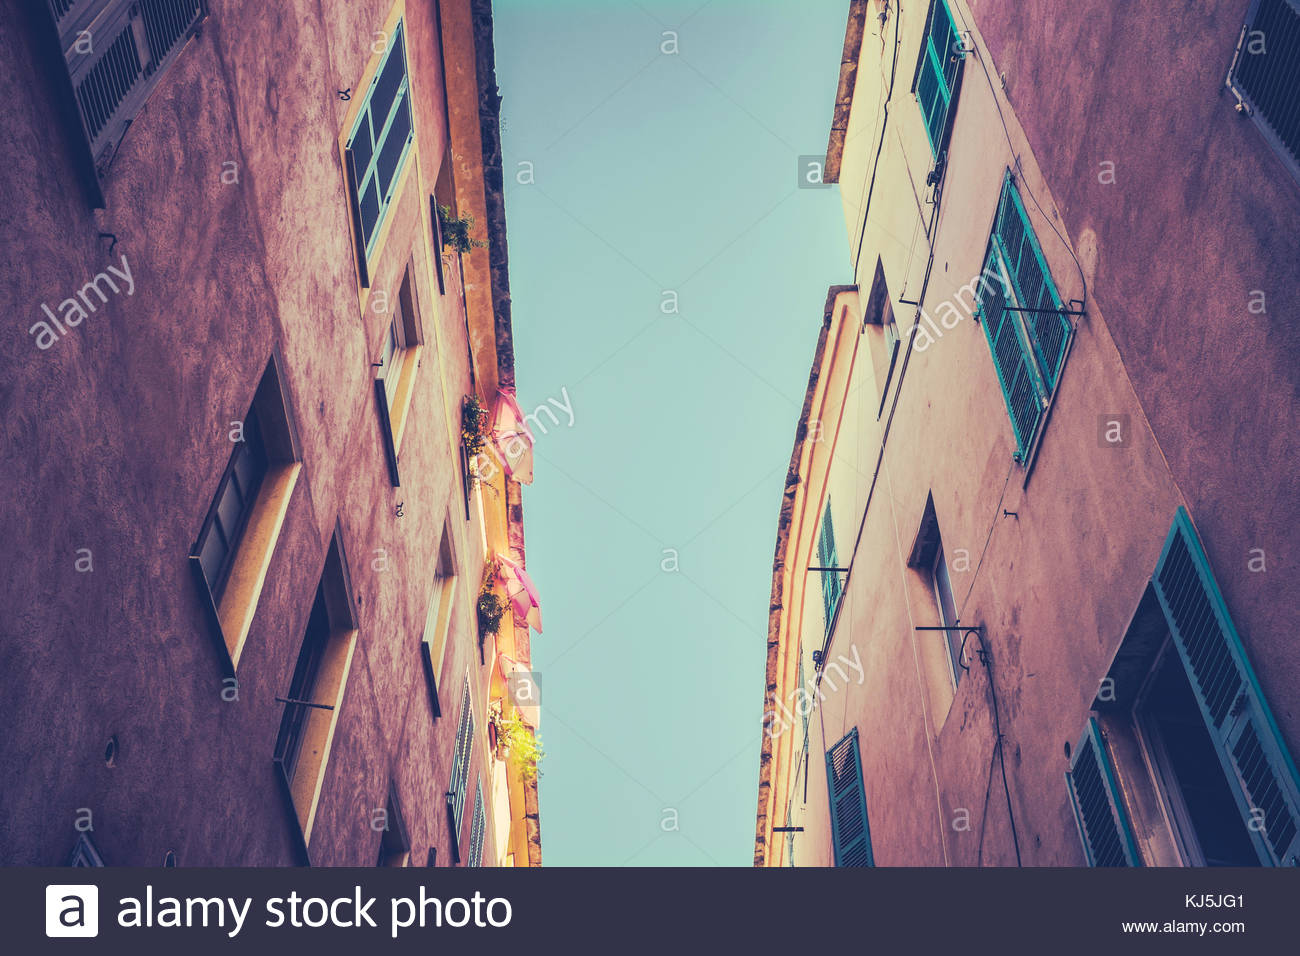 harbour buildings in southern france - Stock Image